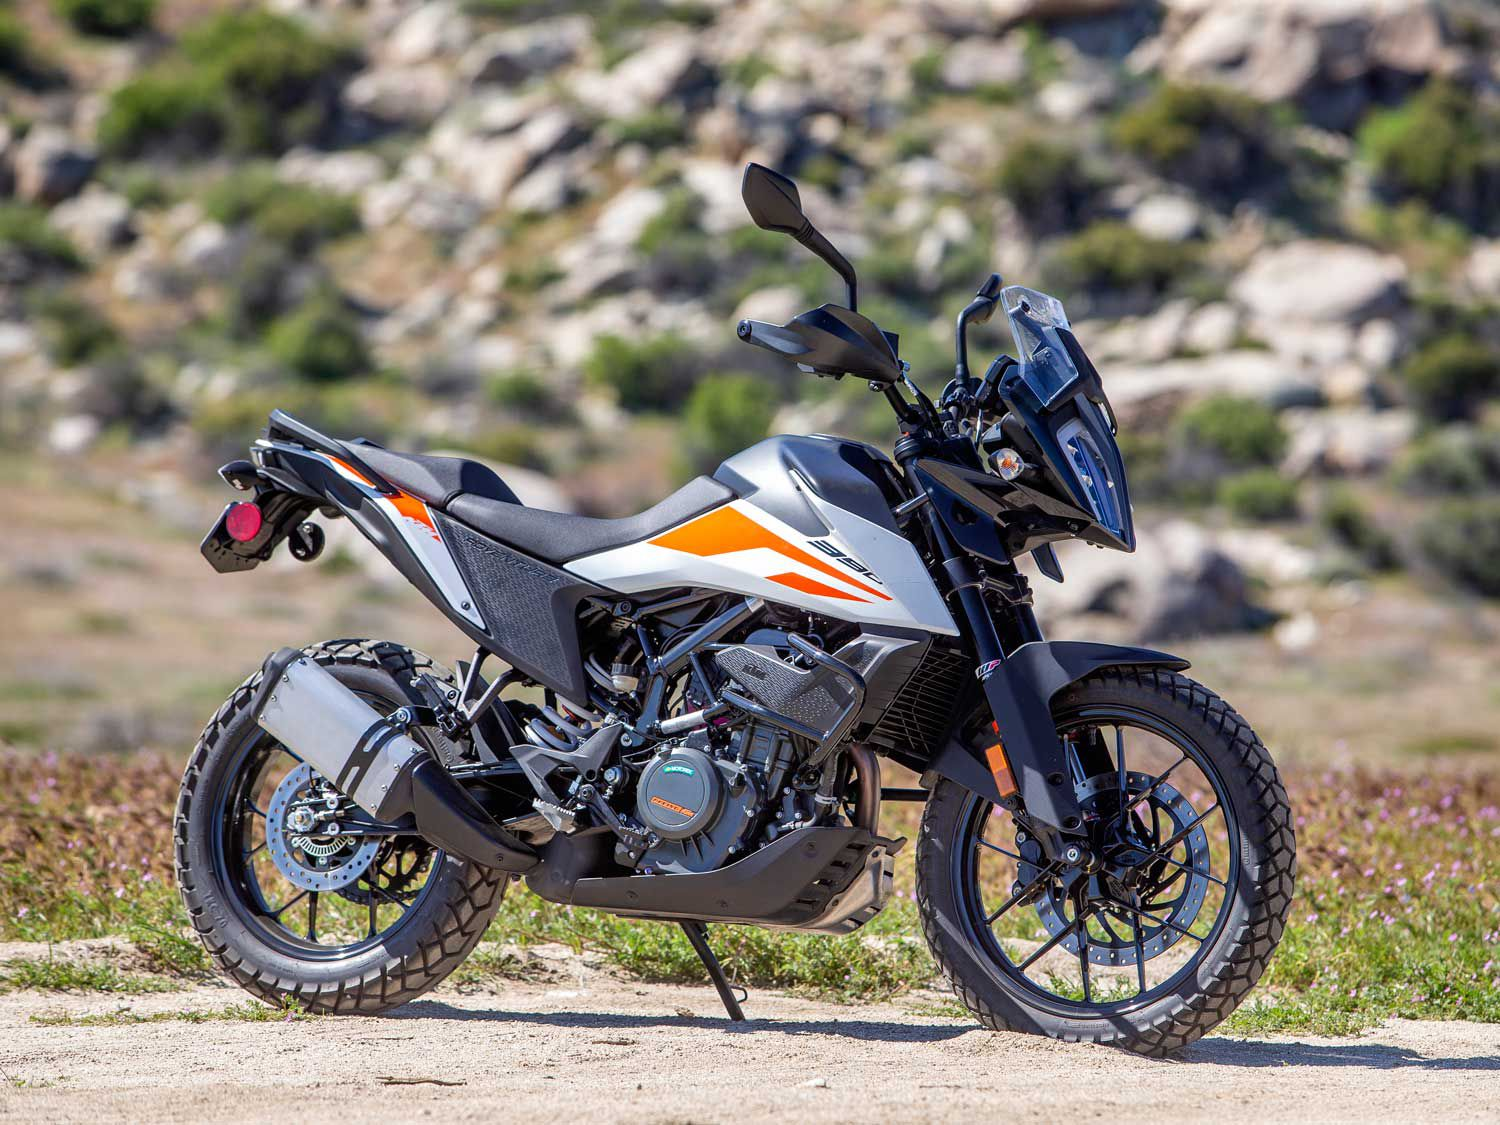 Anything but entry-level. The 390 Adventure from KTM is a solid piece of equipment for its price ($6,199).